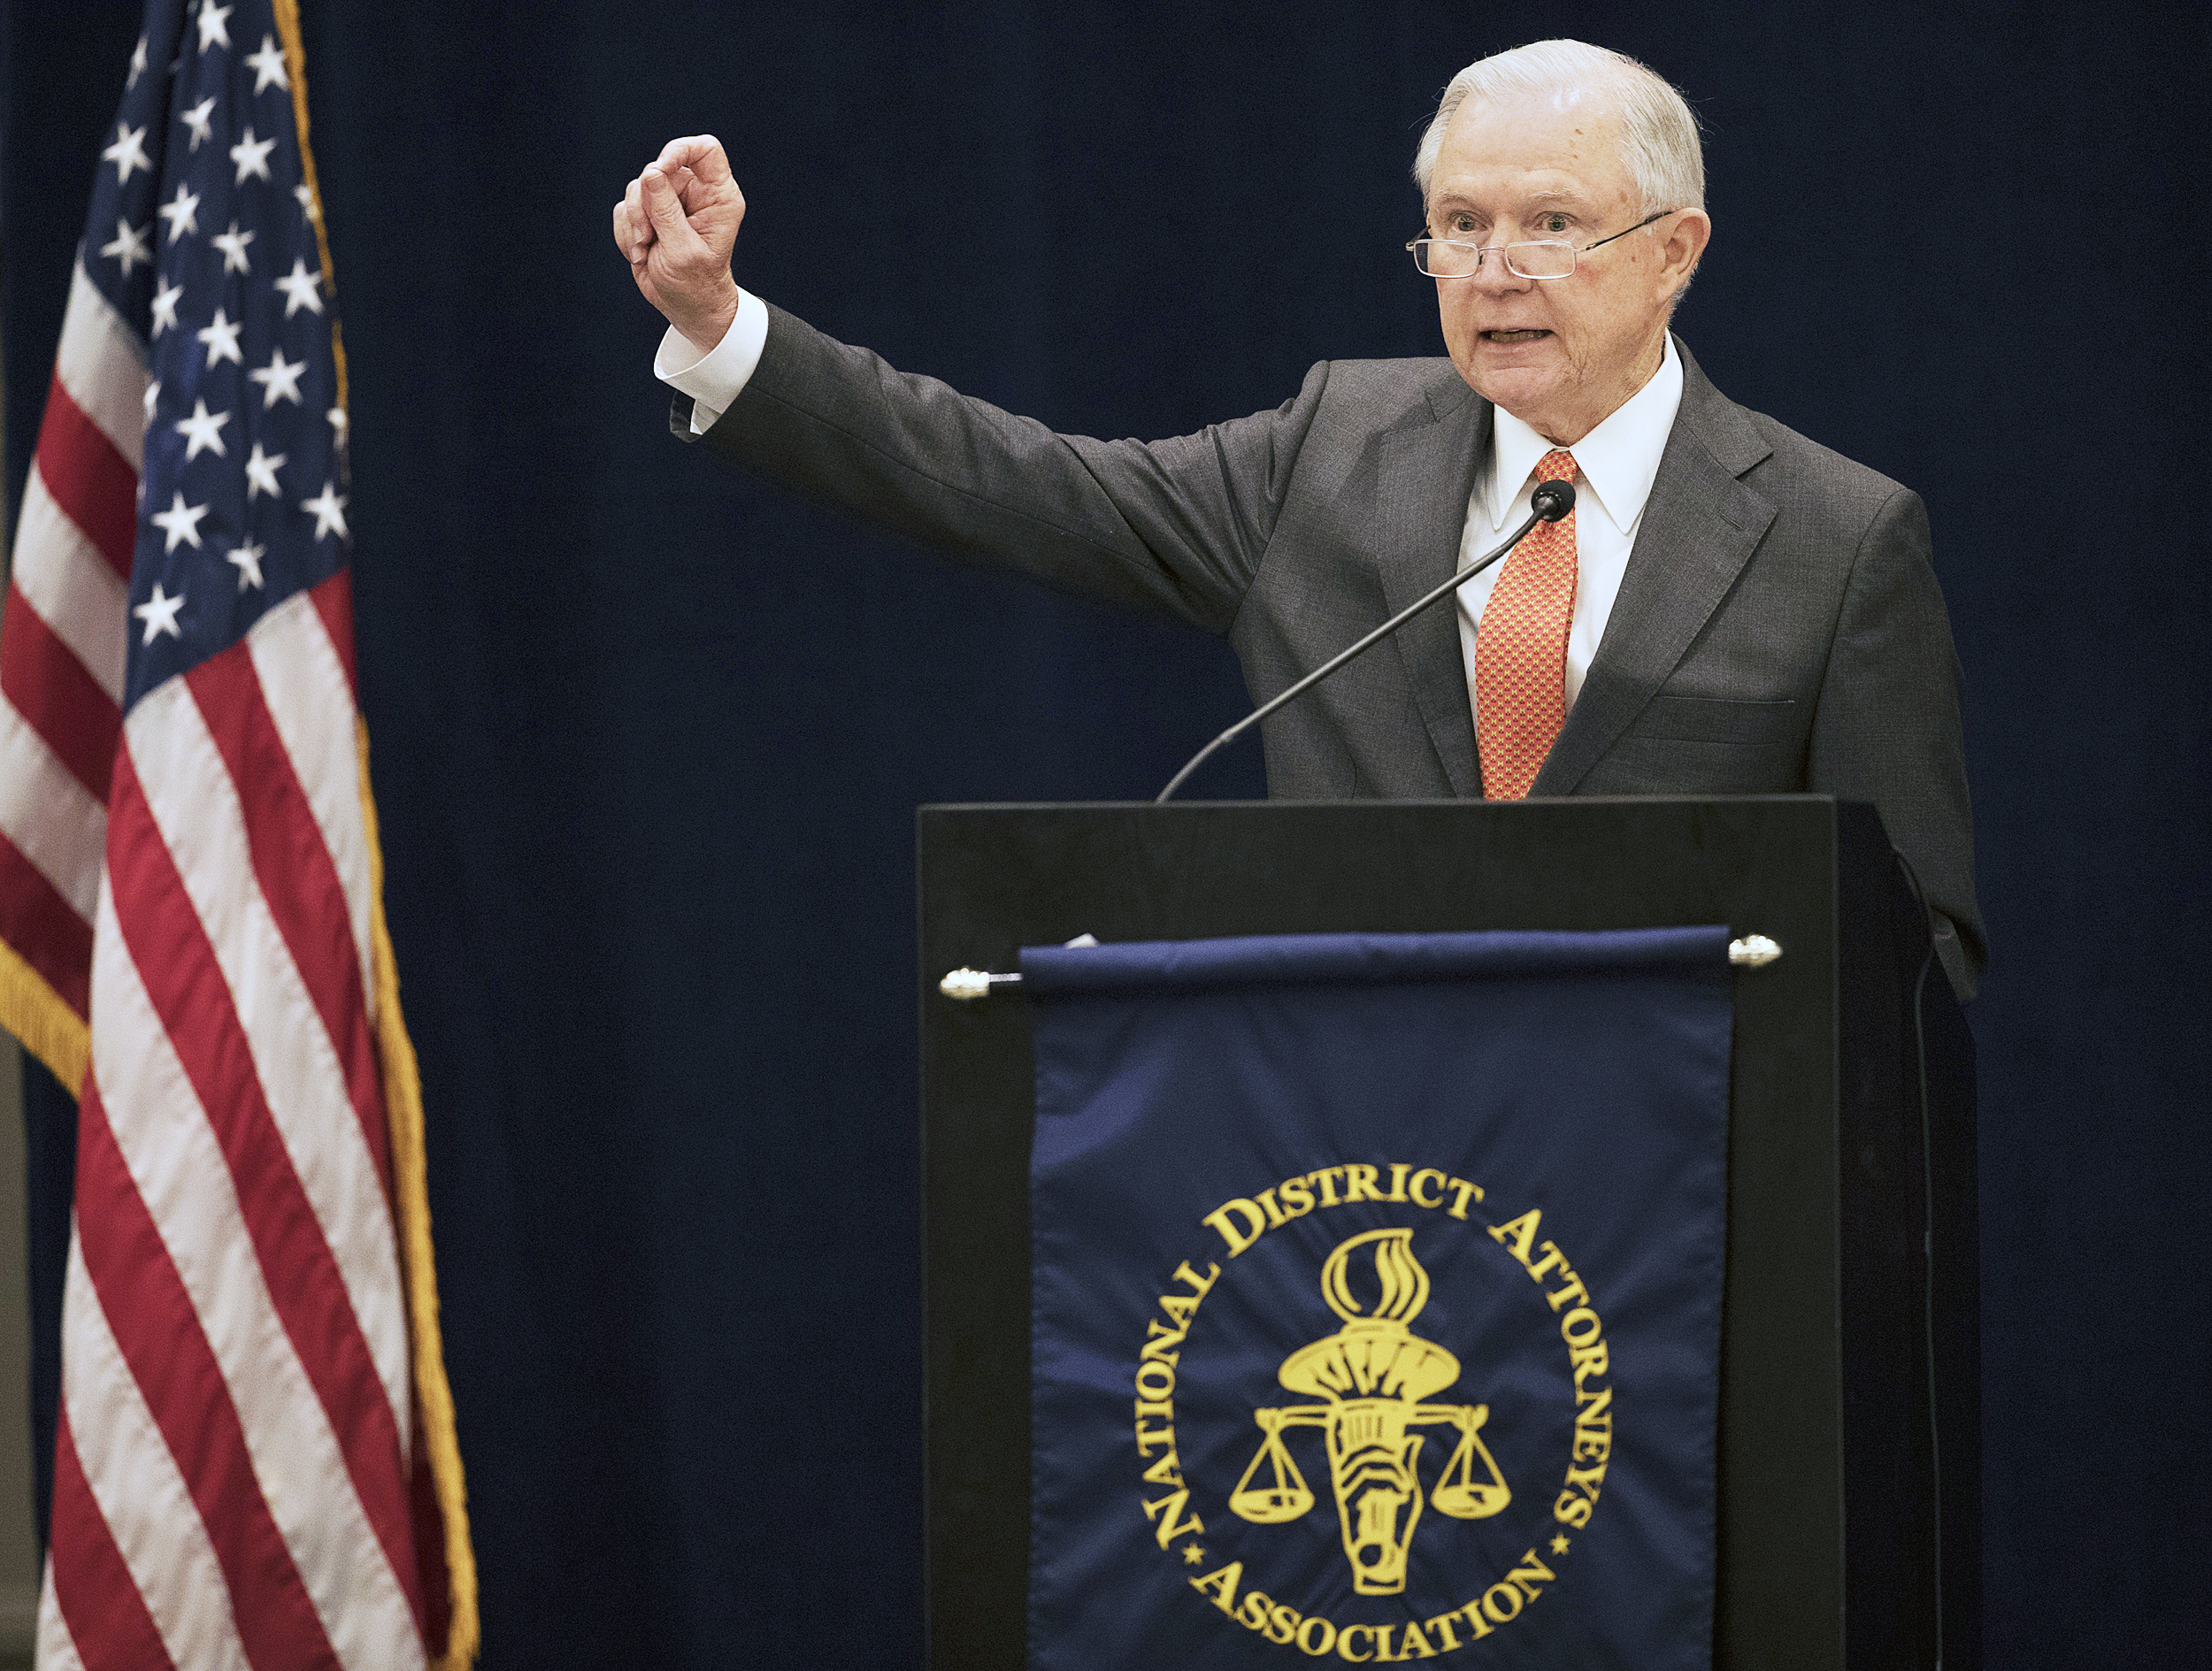 Sessions Restores Police Power on Asset Seizures